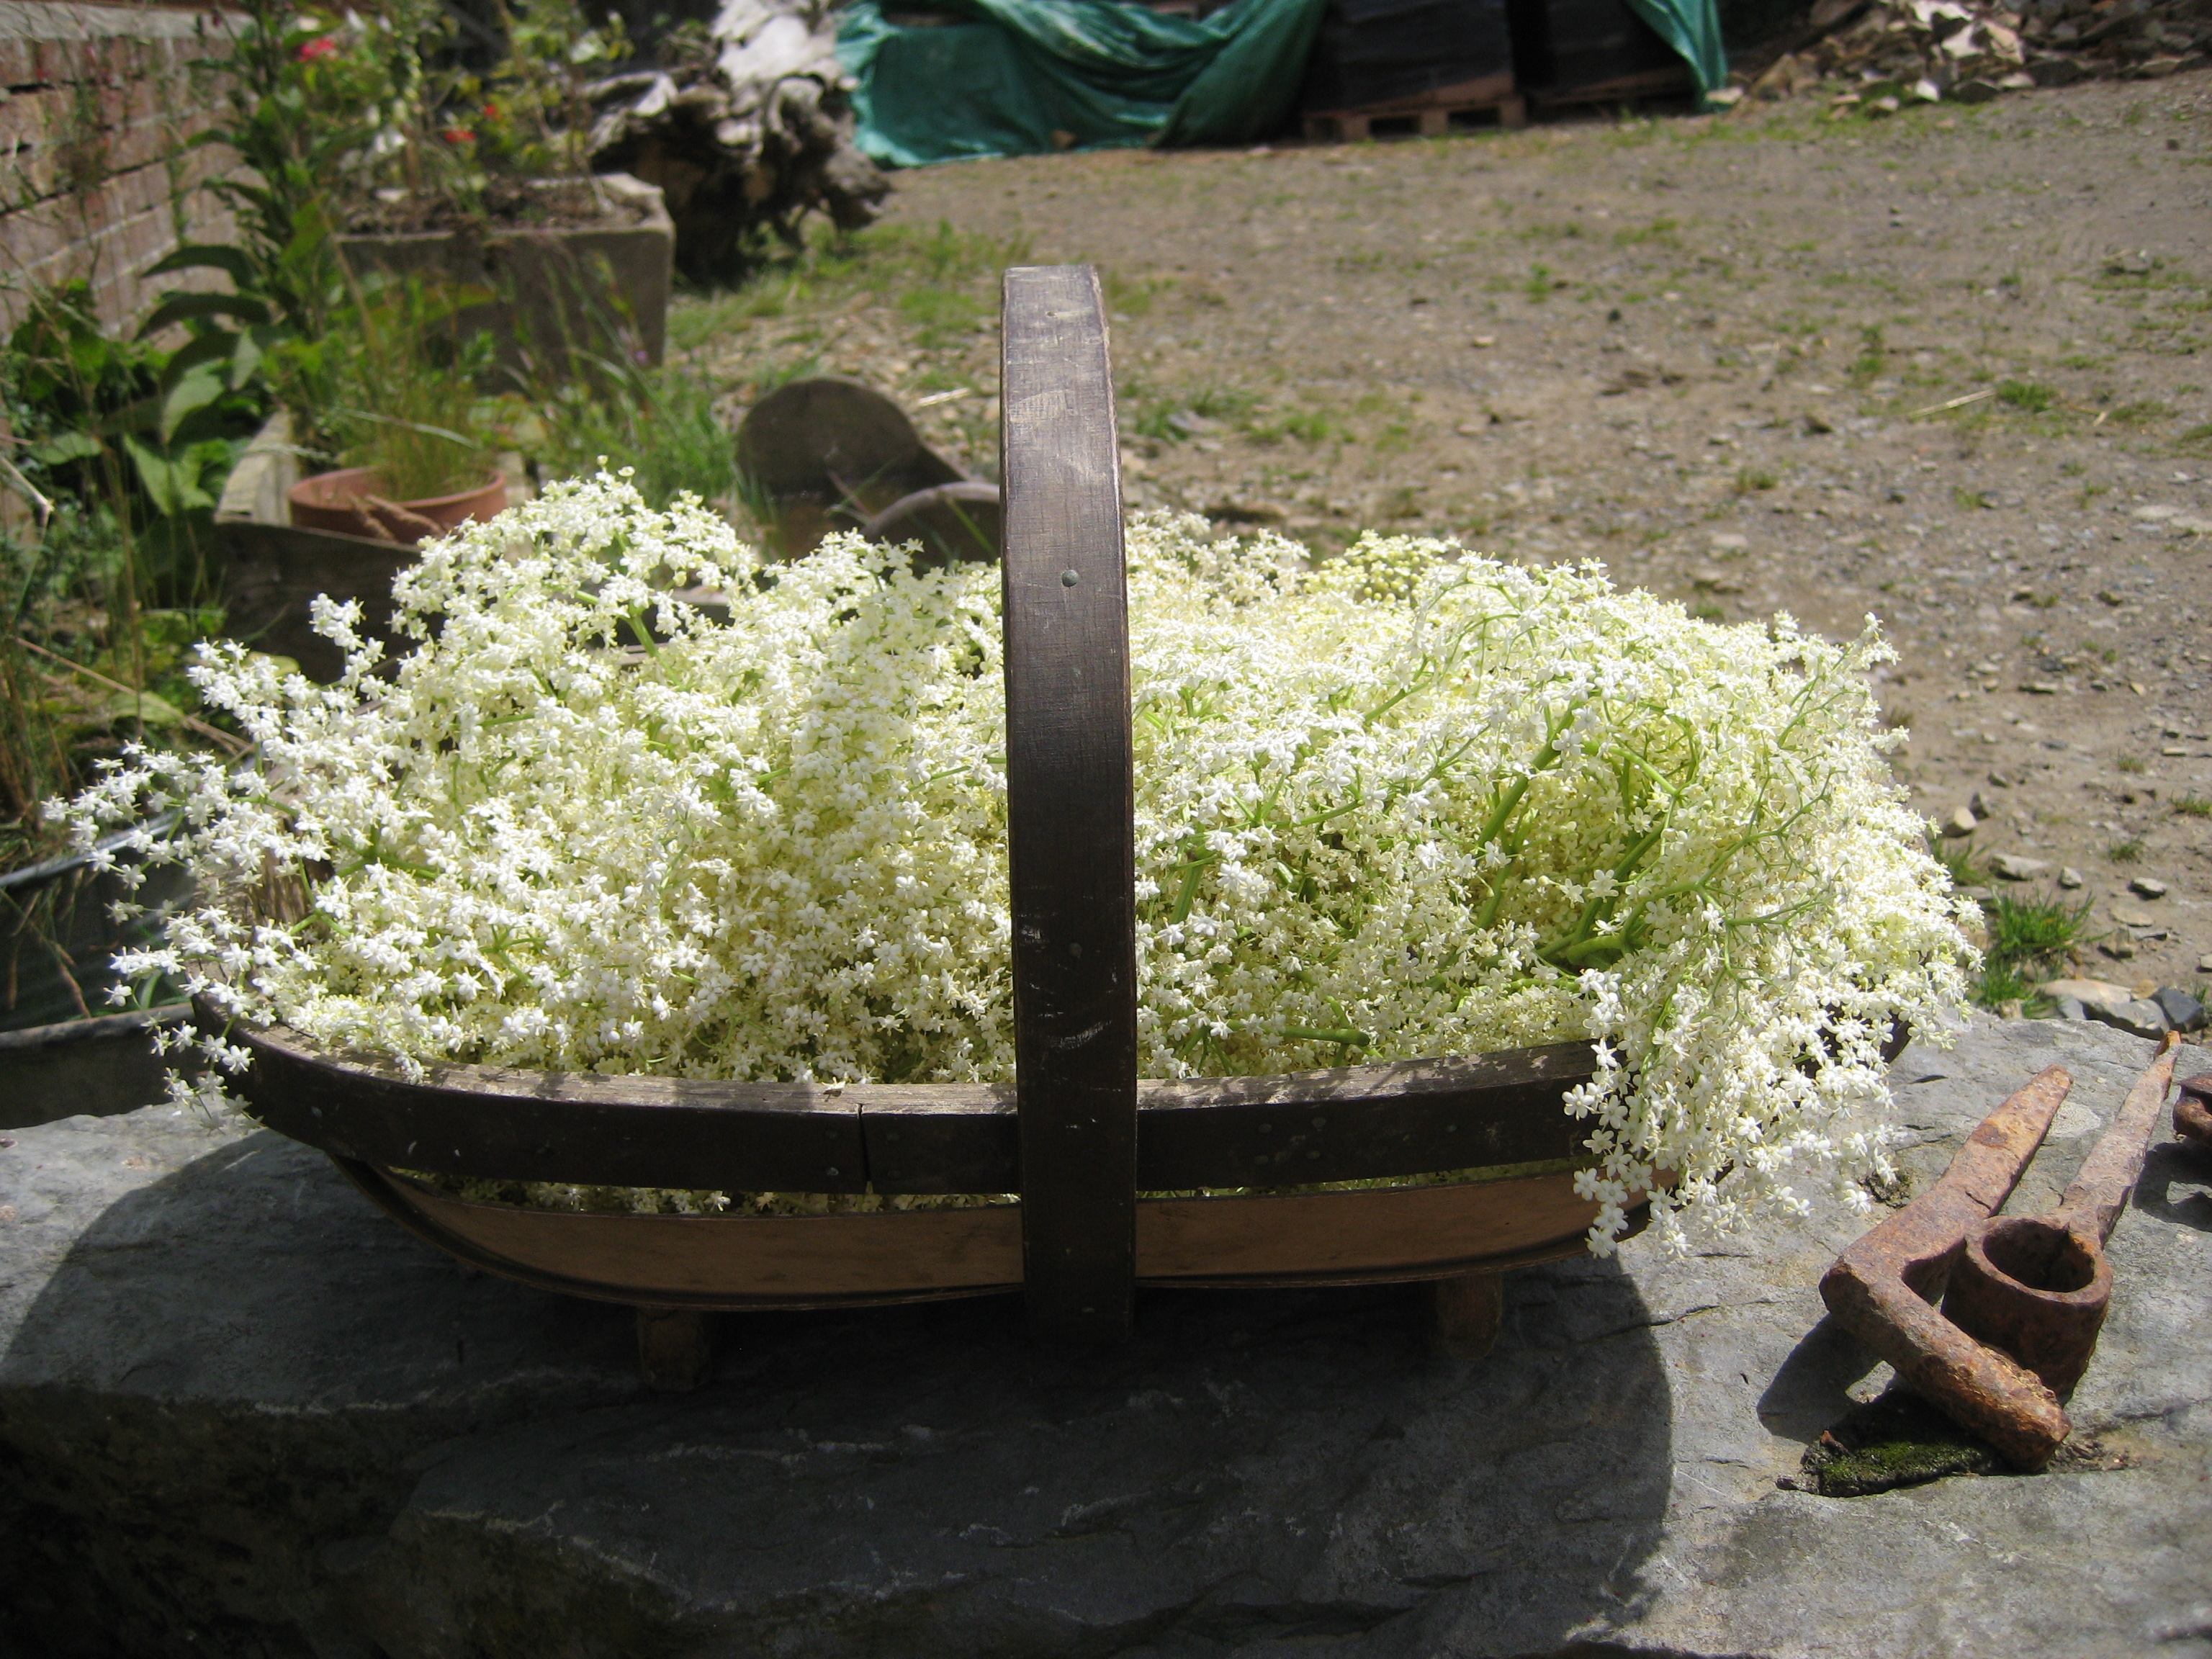 A woven basket full of elder flowers from a smallholder training course at South Yeo Farm West